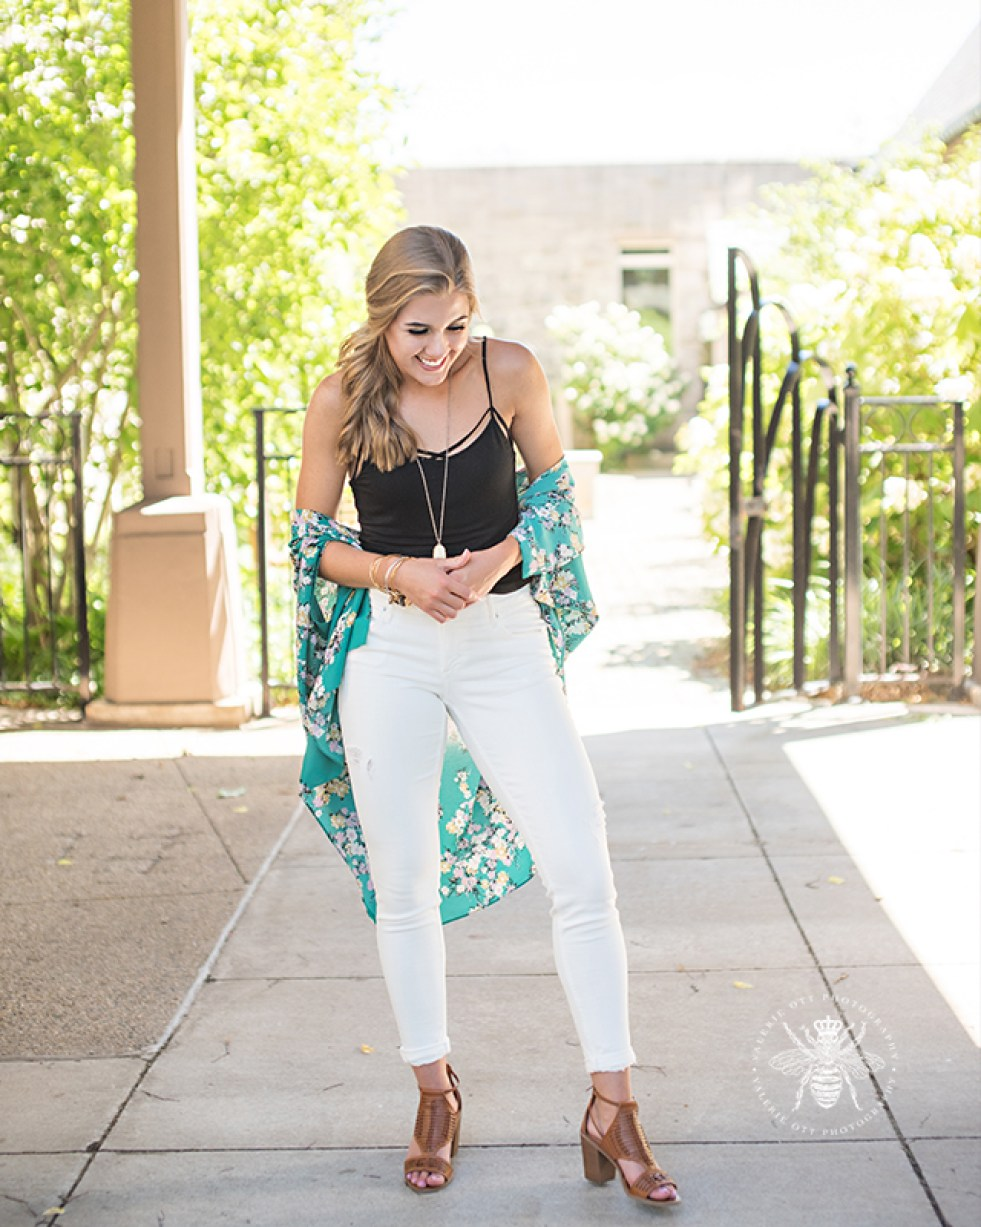 senior girl poses wearing green floral shawl, long necklace, black tank top, and white jeans